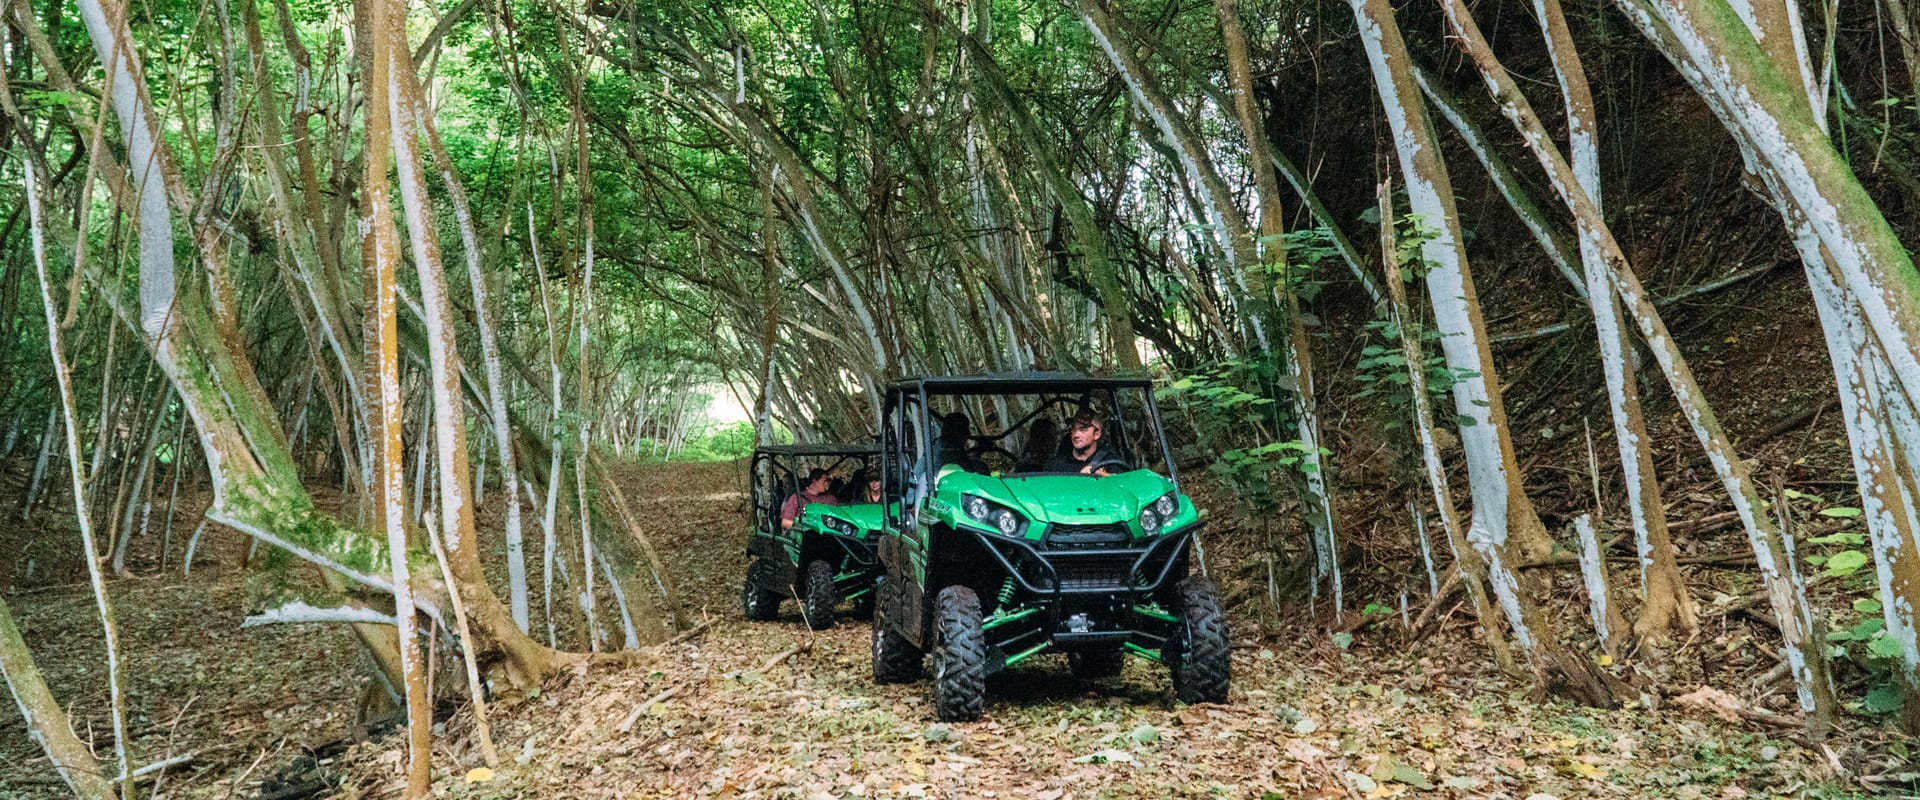 Explore Hawaii's backcountry in an off-road vehicle